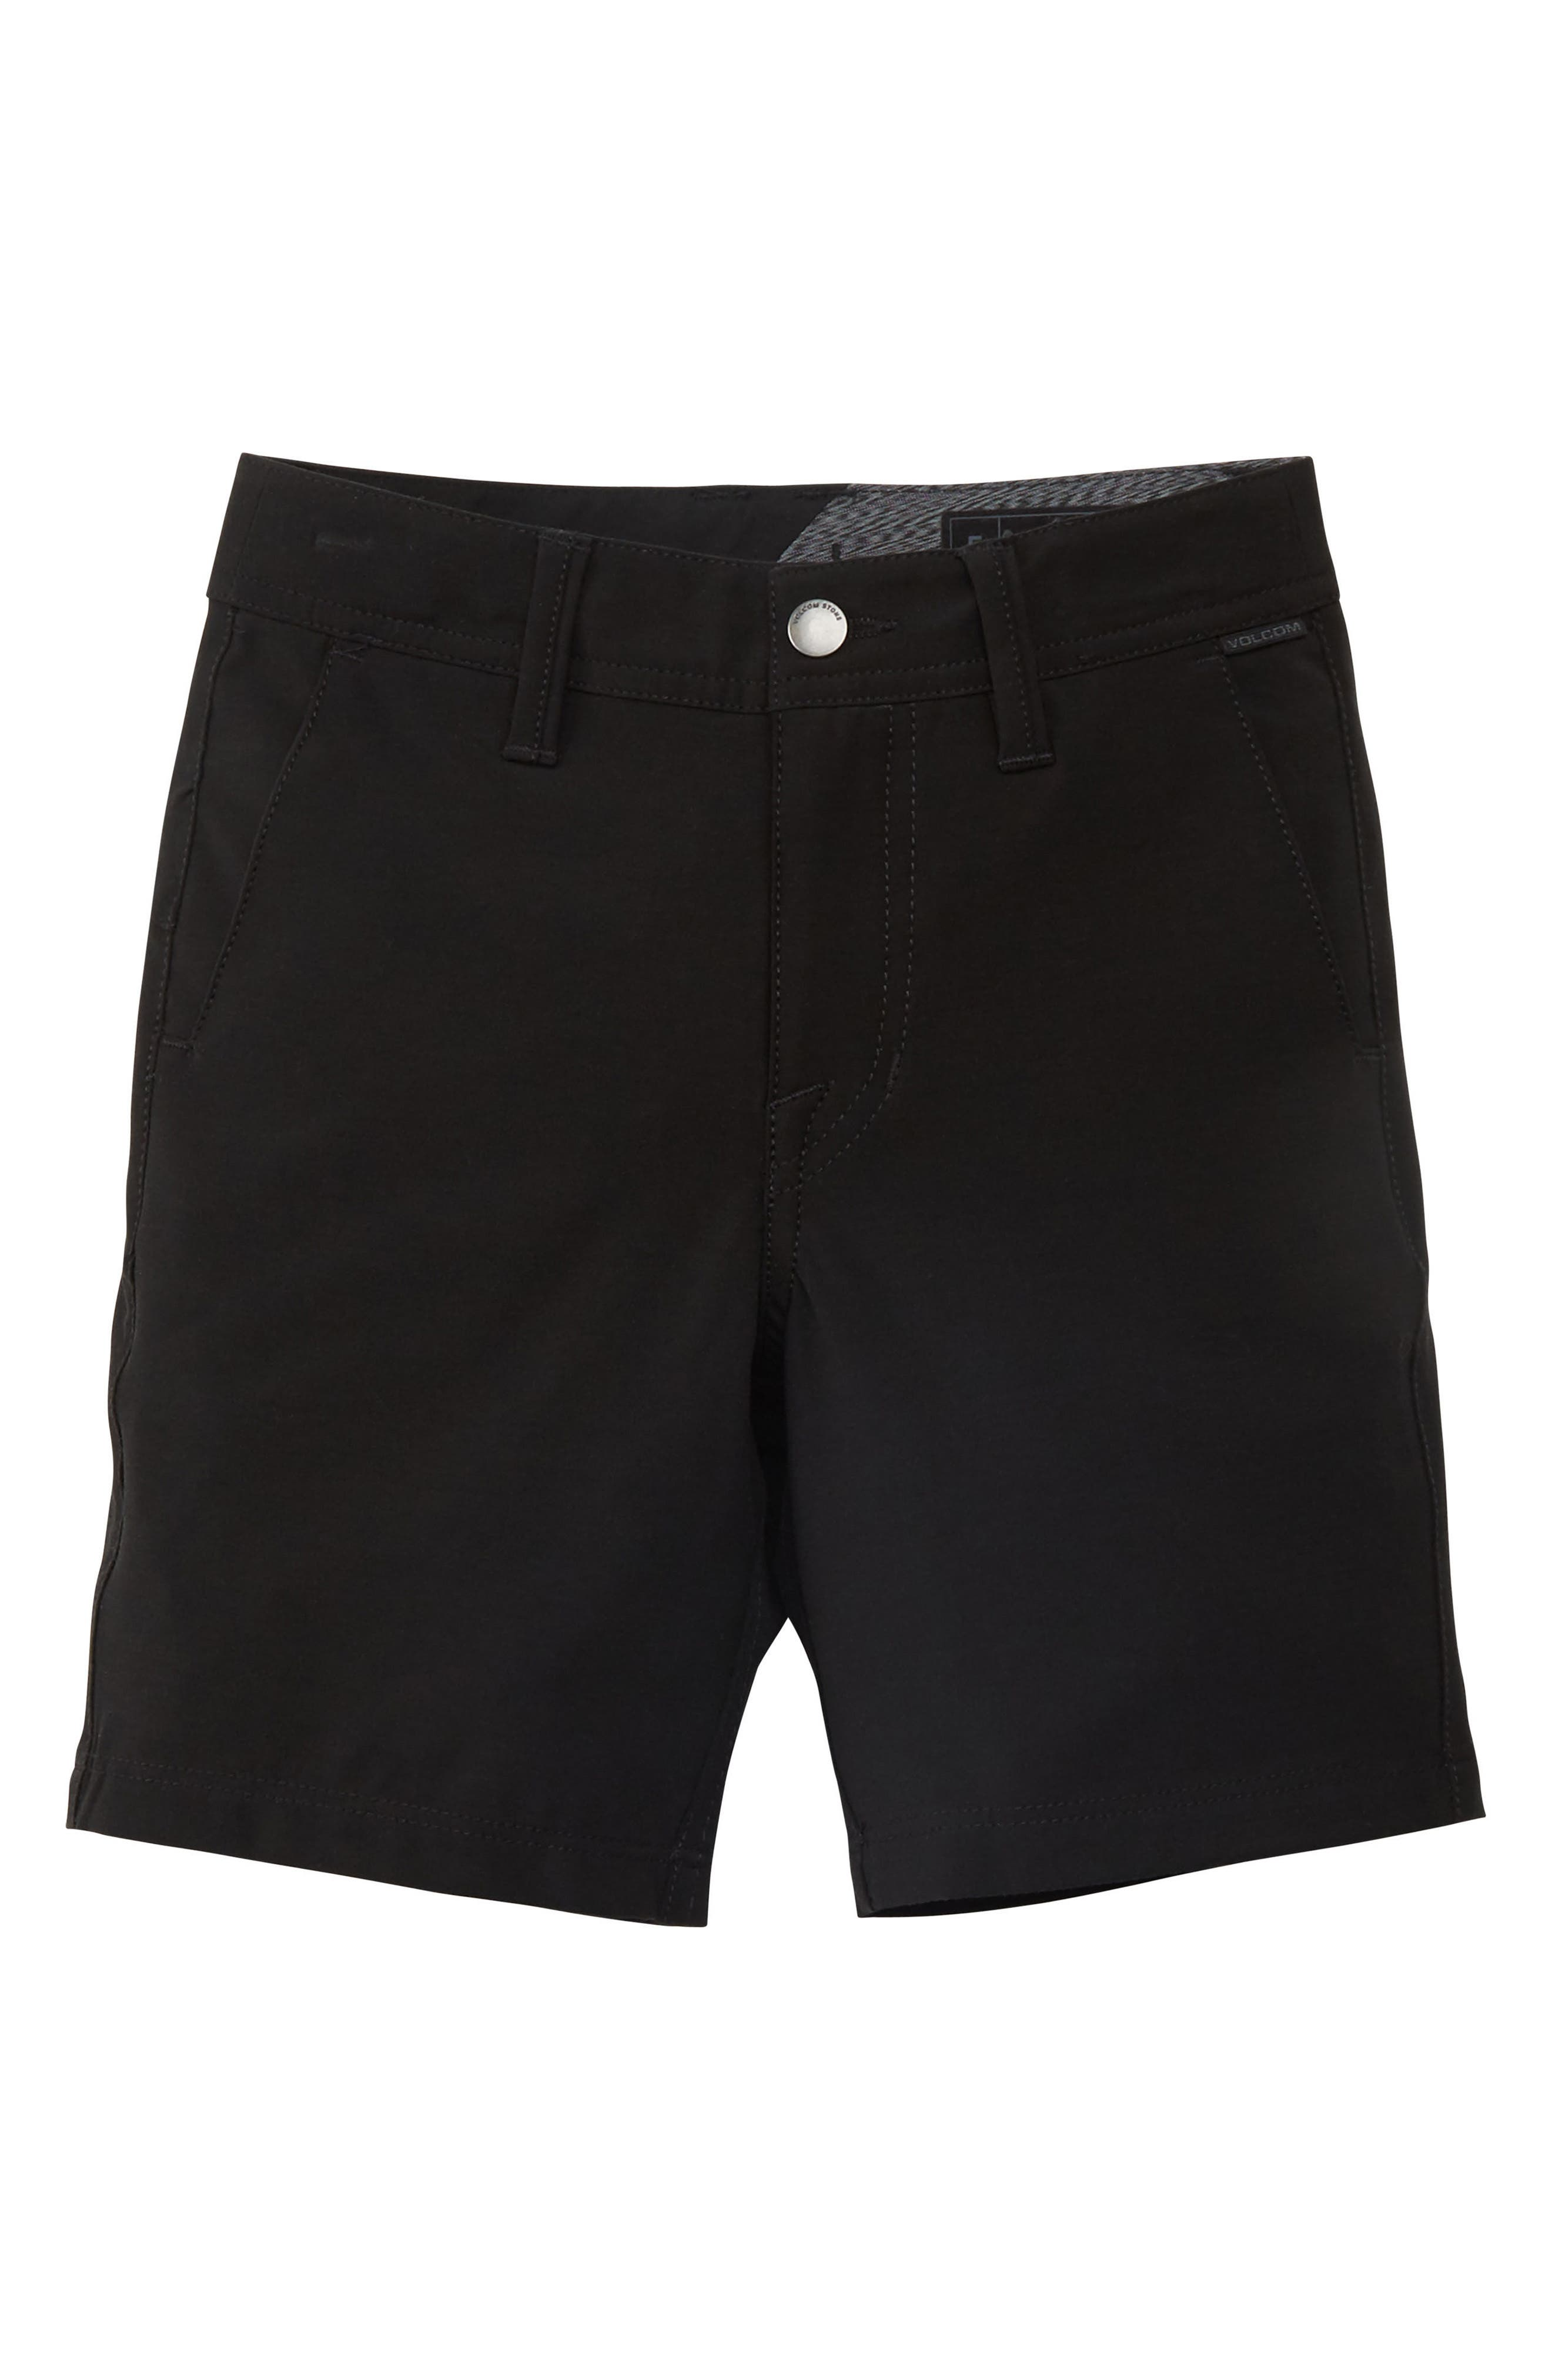 Surf N' Turf Hybrid Shorts,                             Main thumbnail 1, color,                             Black